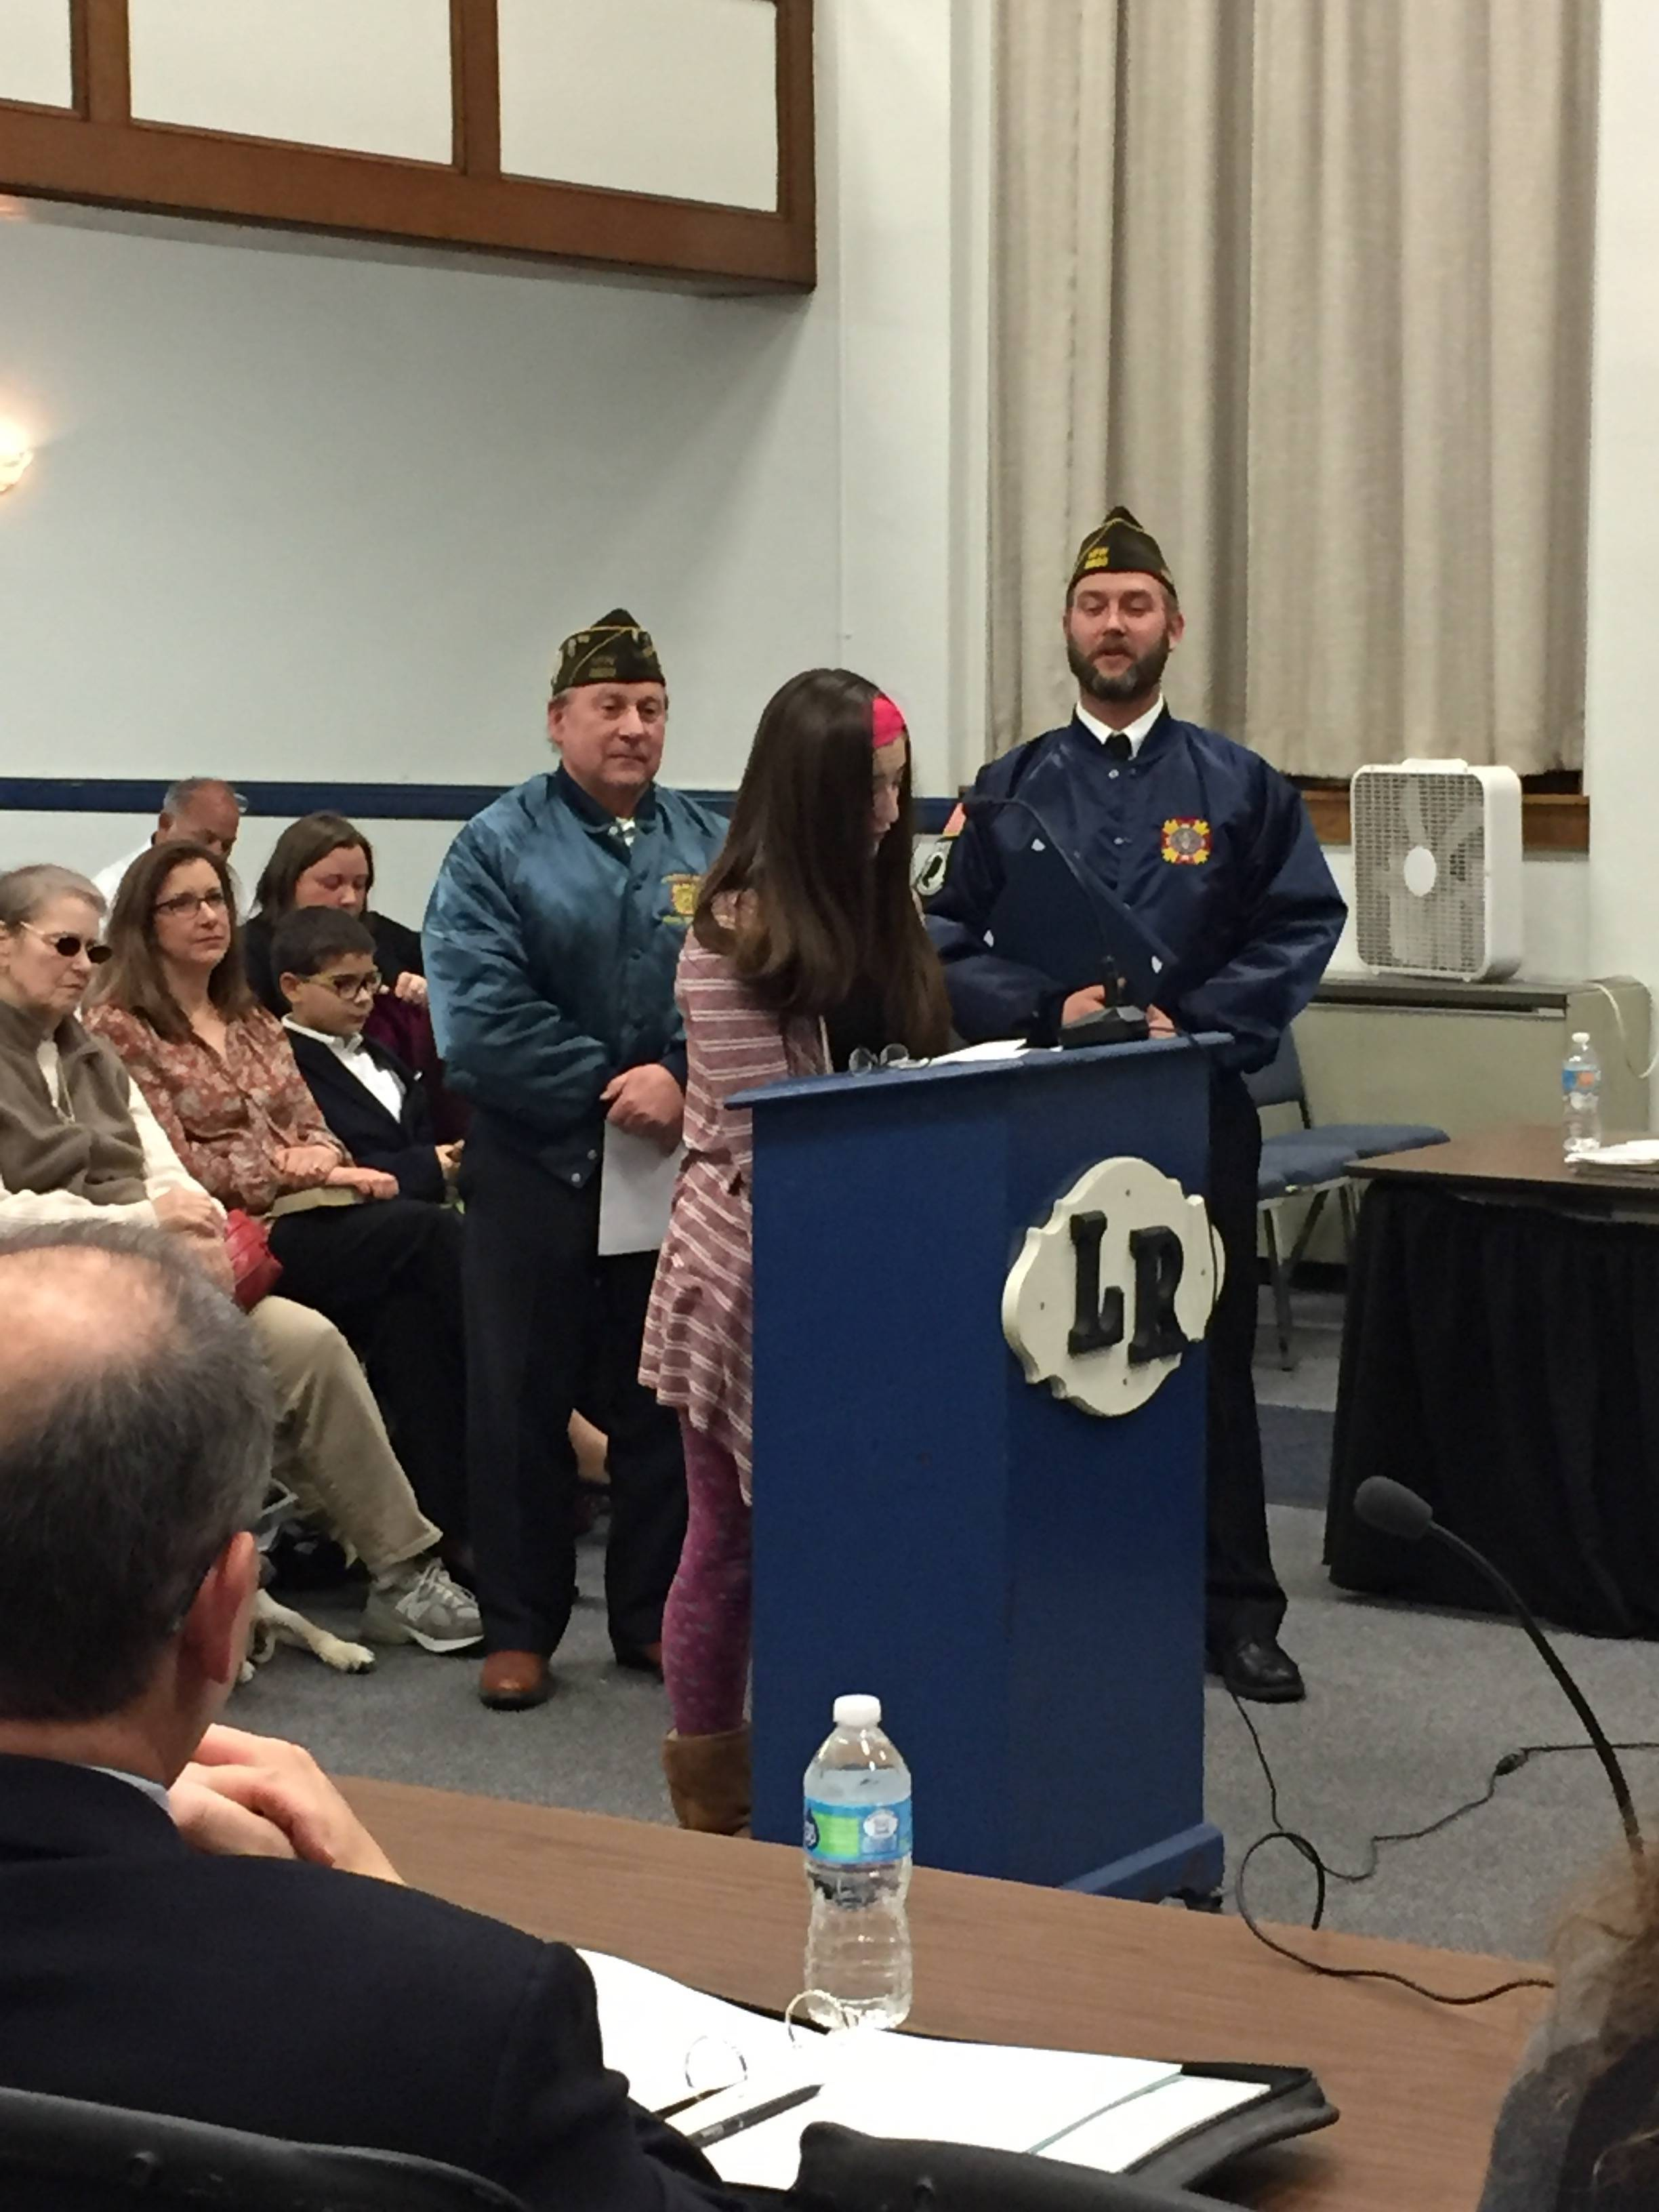 local vfw celebrates patriots pen and voice of democracy essay patriots pen farina credits roxbury township public schools